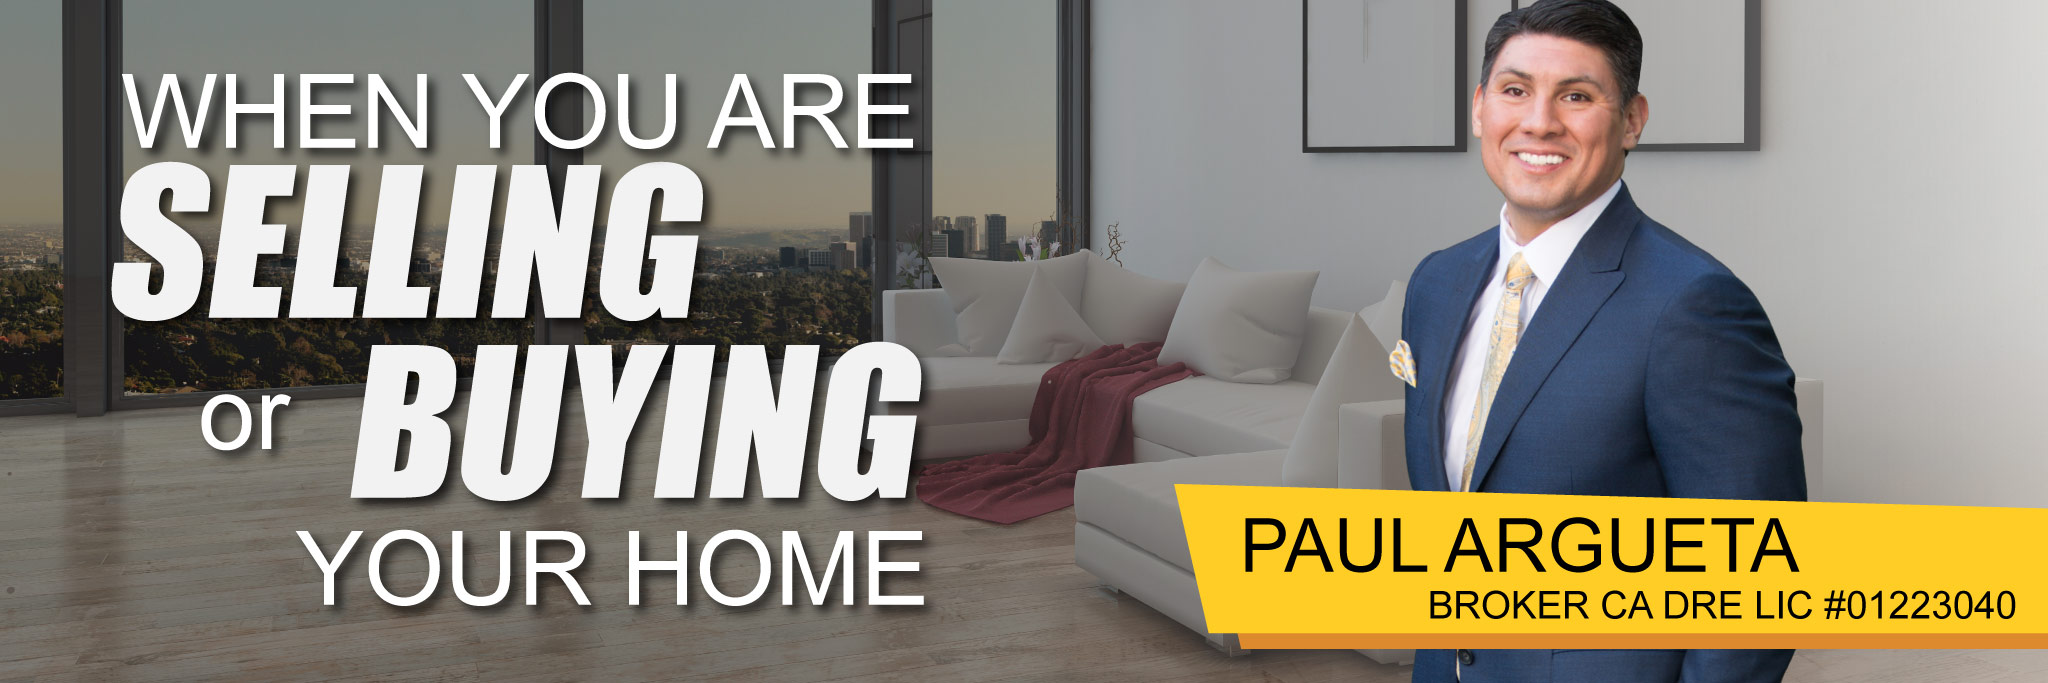 talktopaul-paul-argueta-best-real-estate-agent-in-los-angeles-best-realtor-in-los-angeles-luxury-real-estate-agent-pro-athlete-relocation-celebrity-real-estate-agent-3